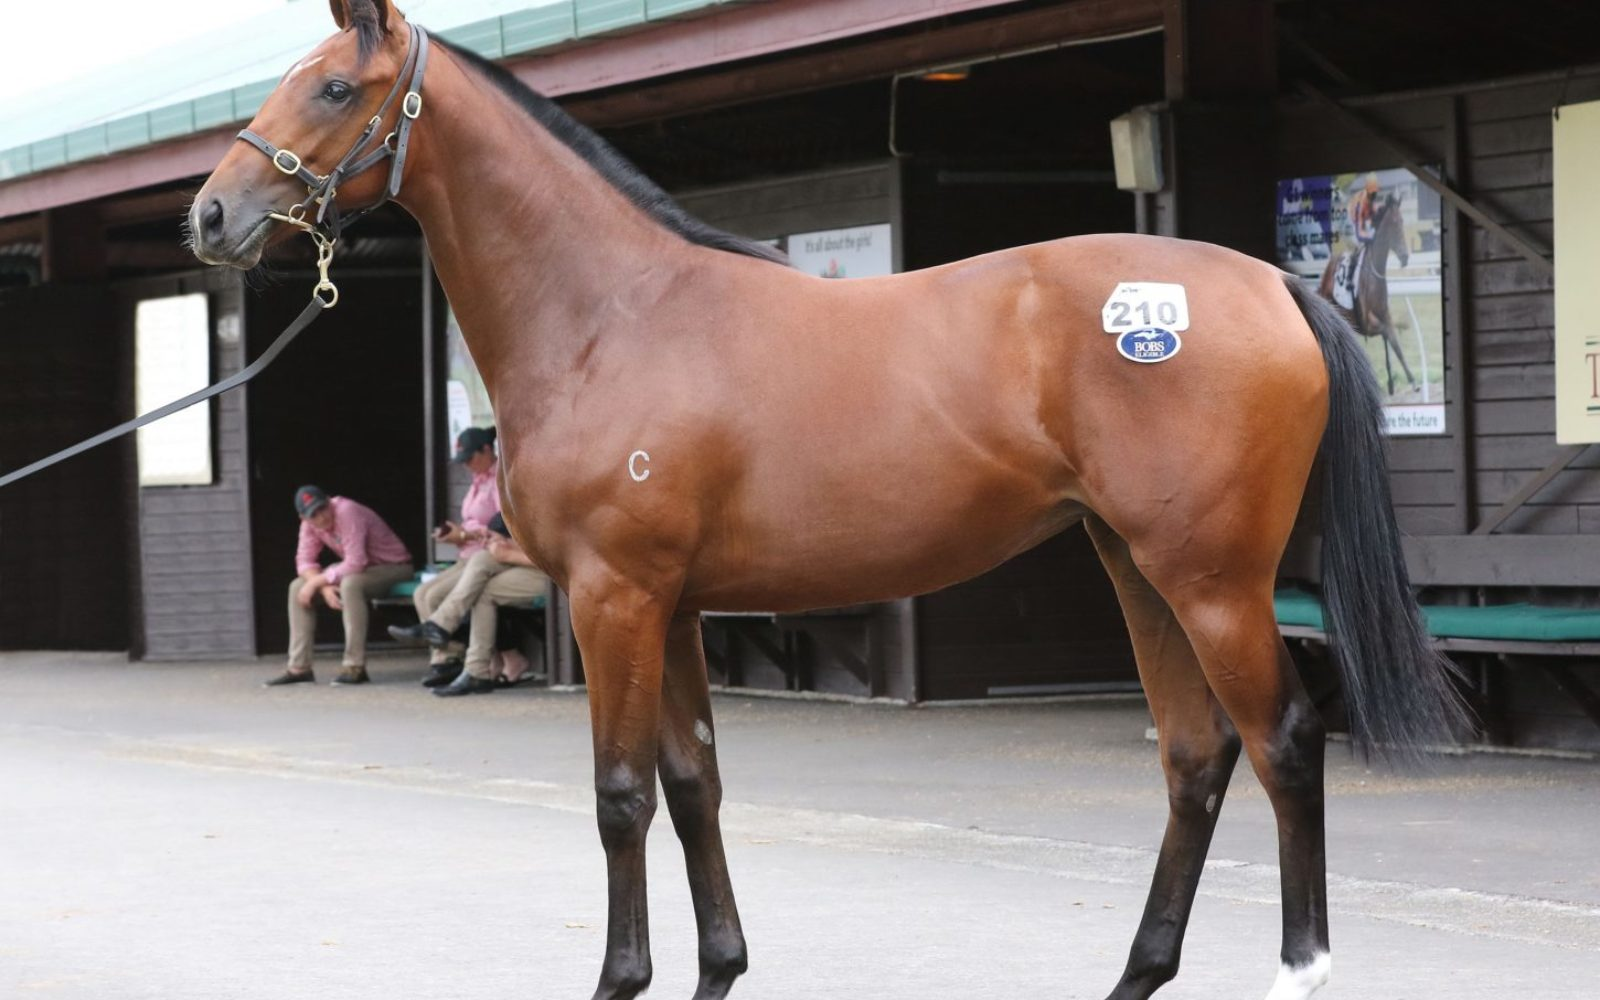 KARAKA 19 – Lot 210 Vancouver (AUS) – Mexican Rose, Bay Filly